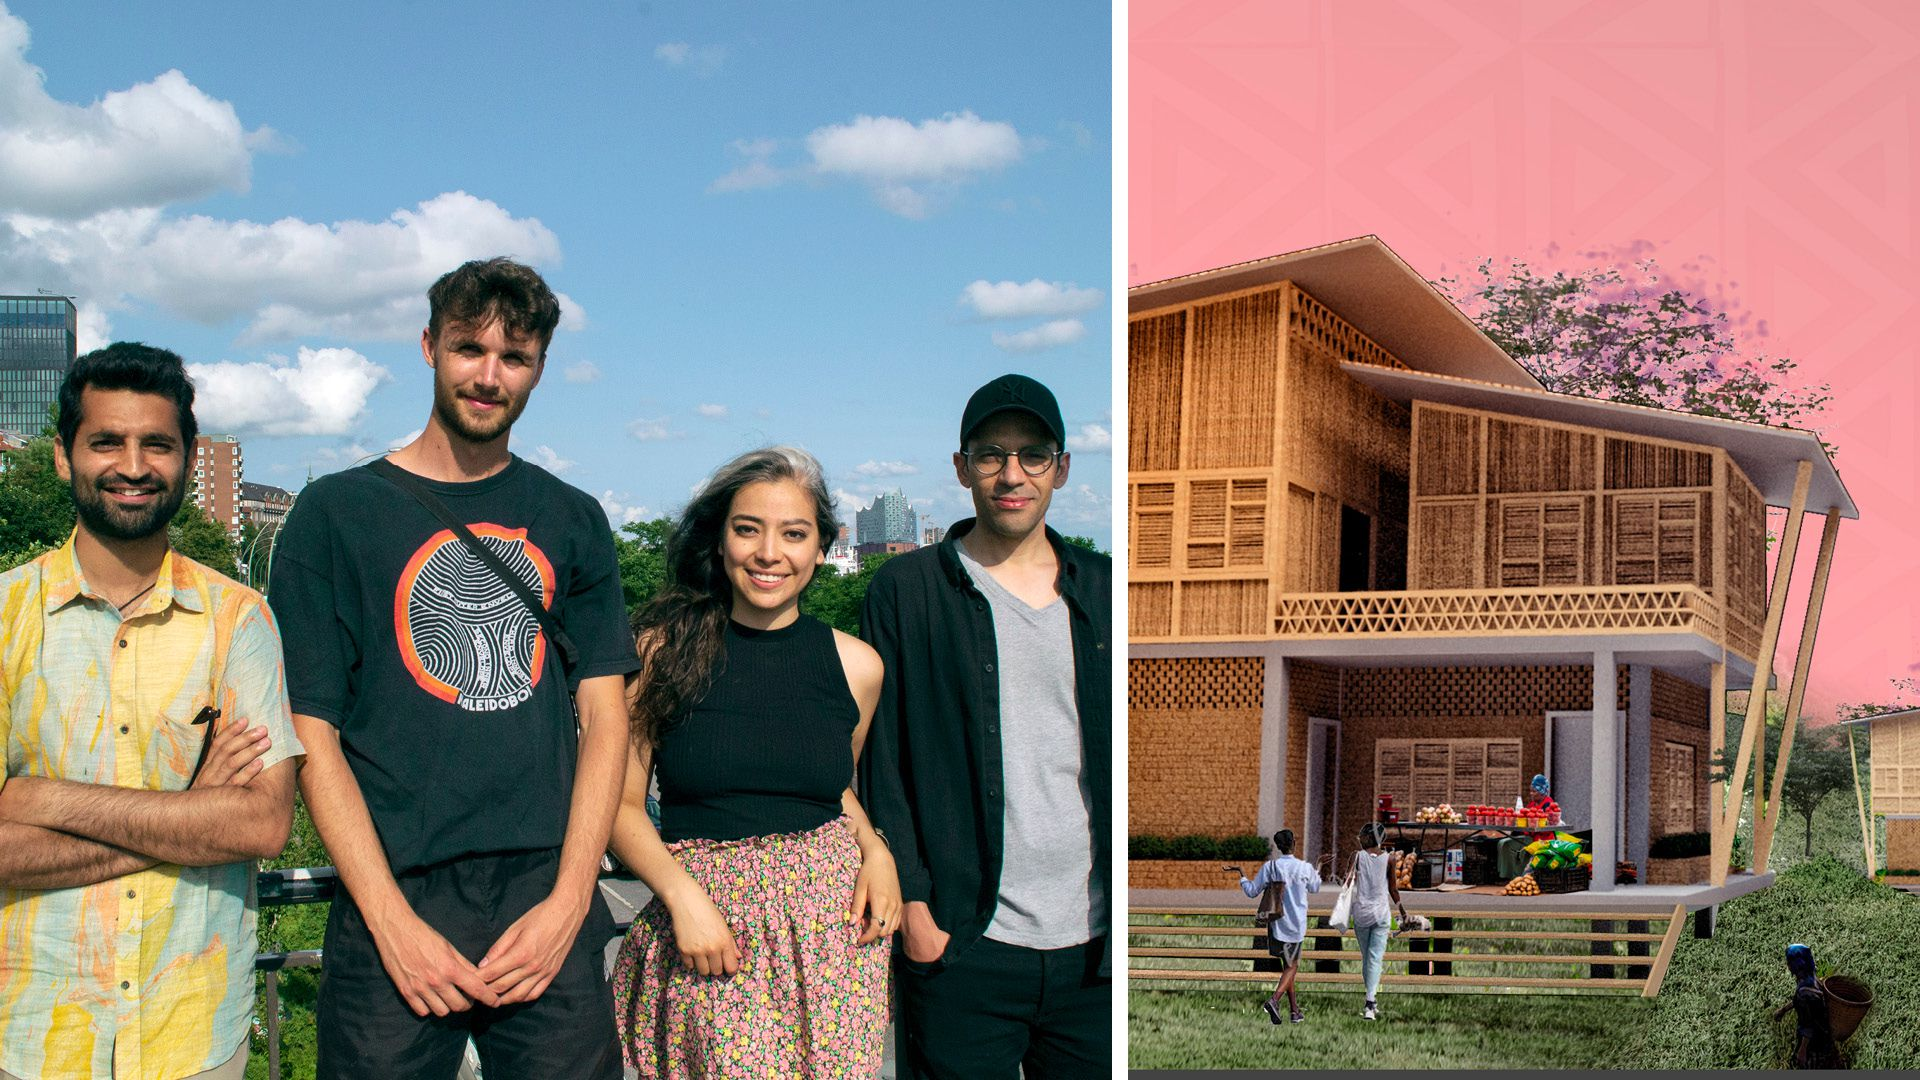 Four students from HafenCity University in Hamburg win the Dignified Home Design Competition.